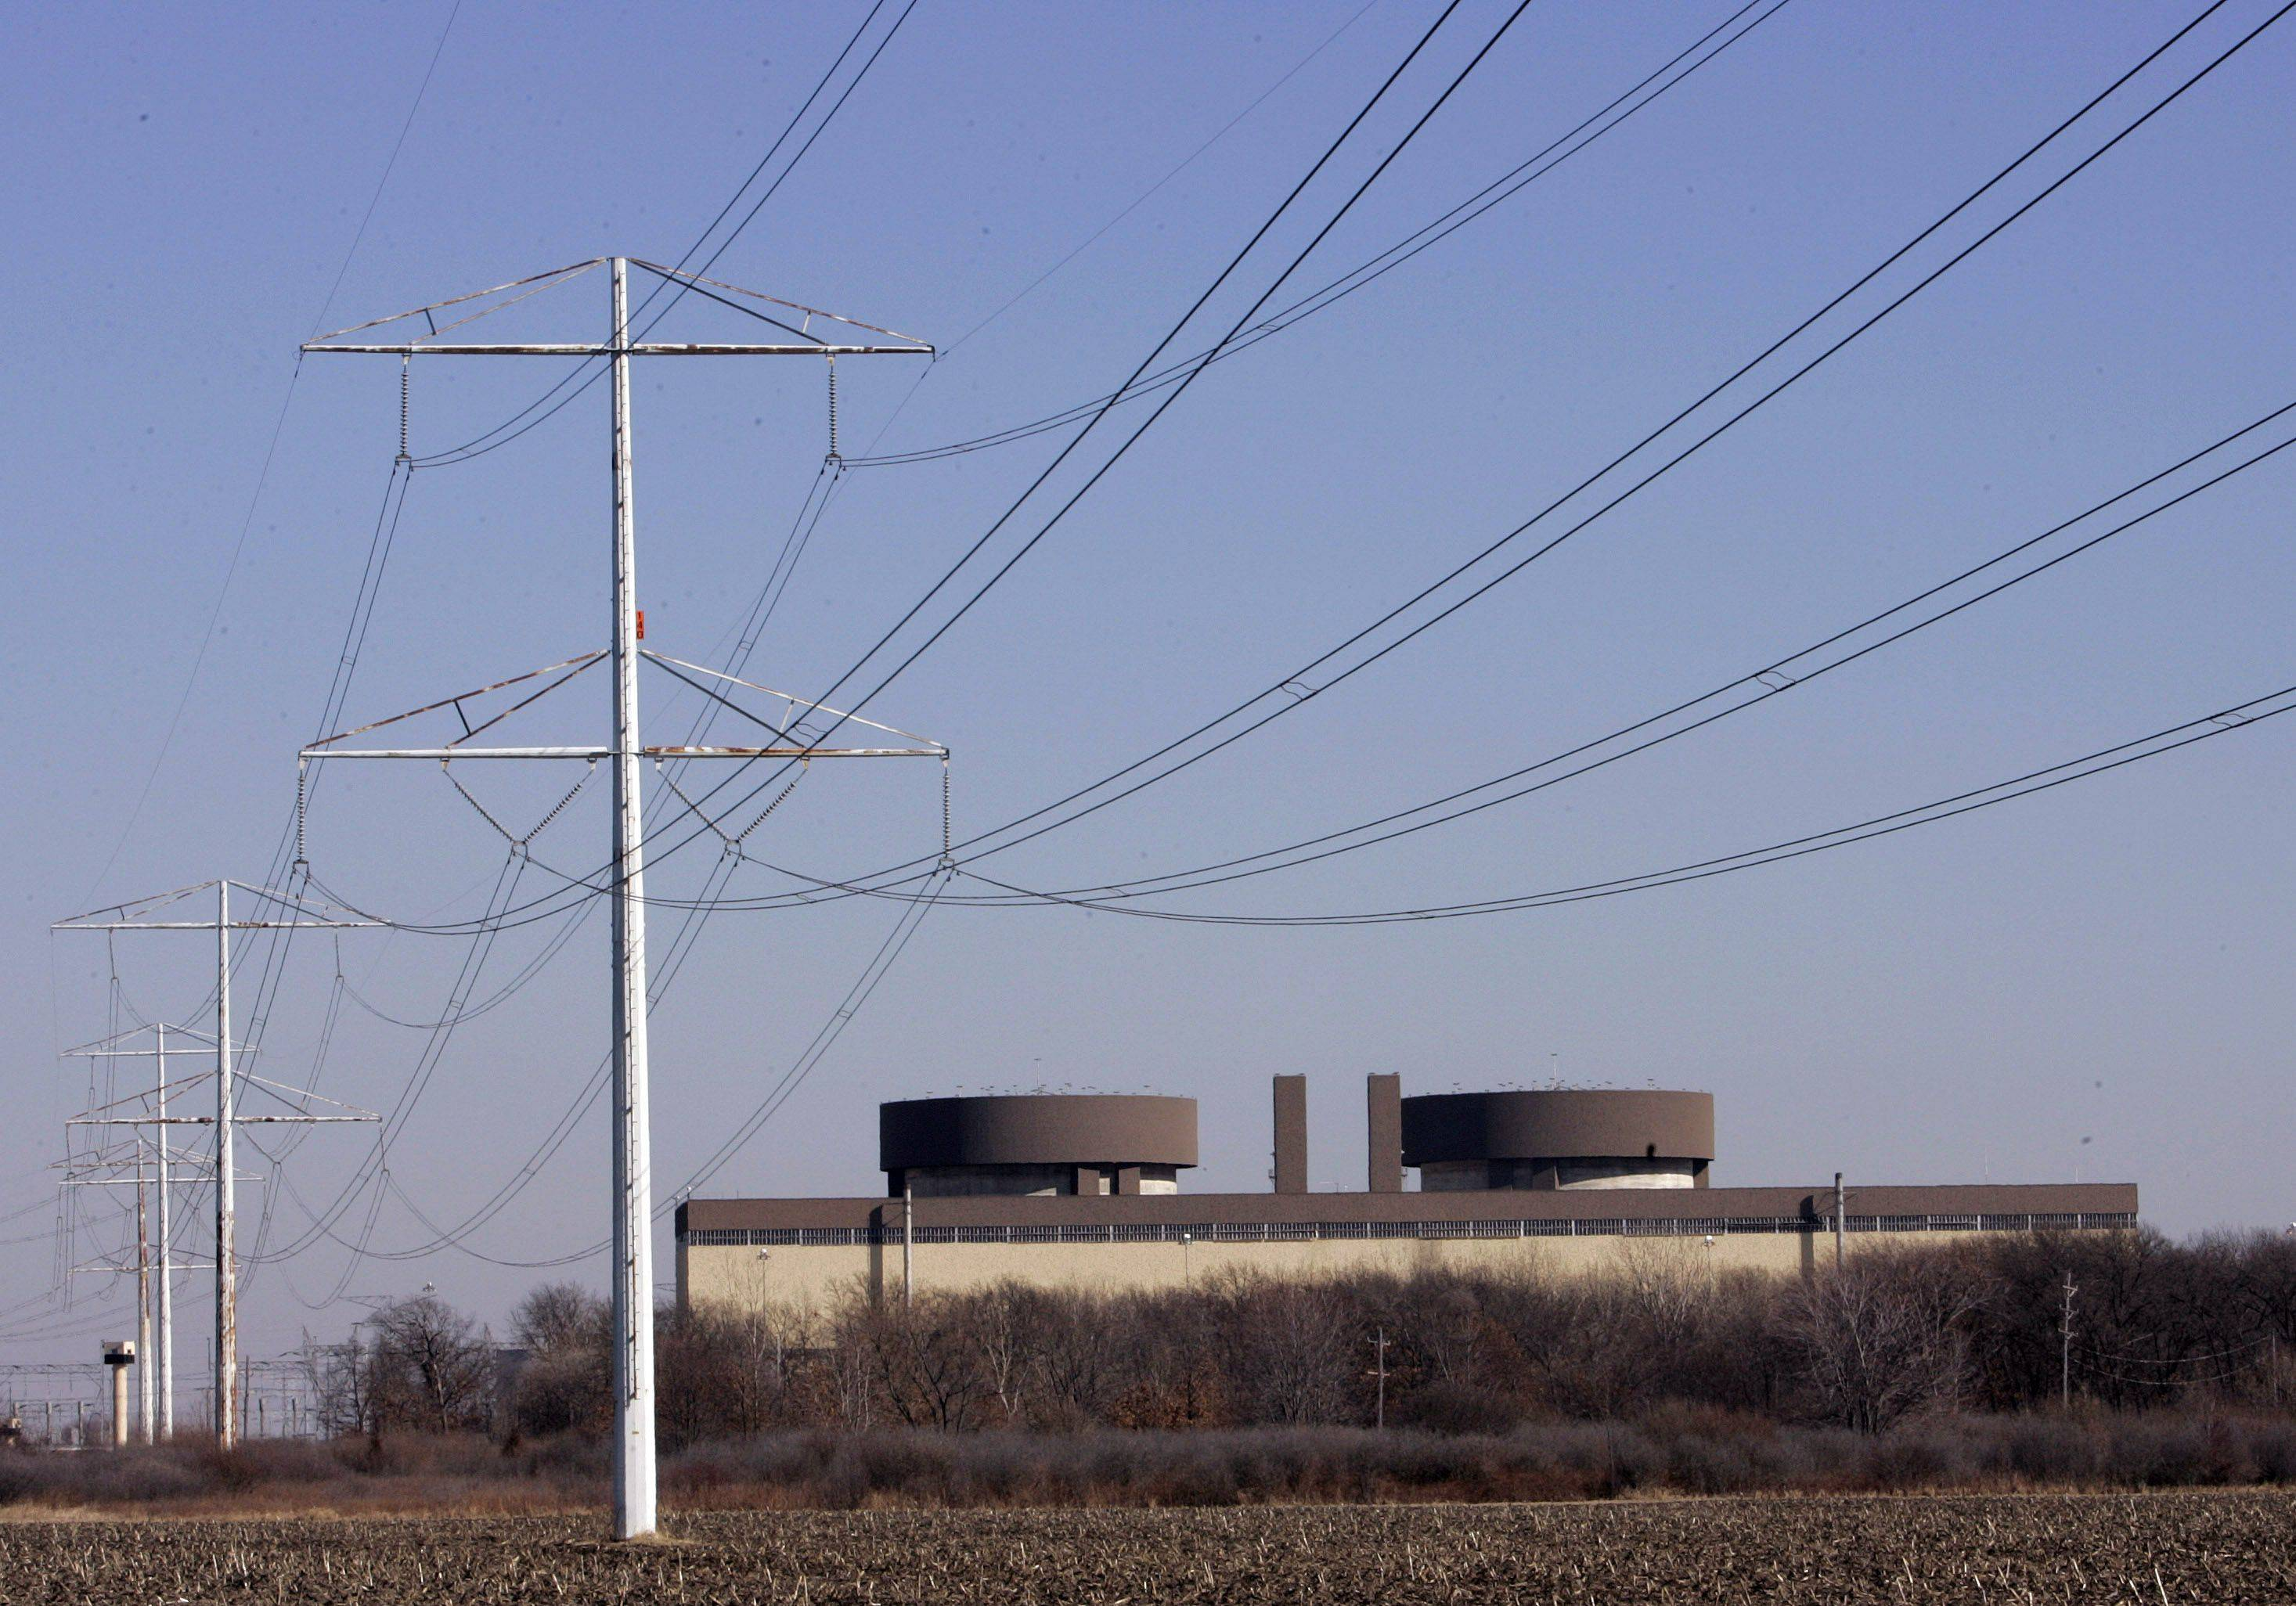 Exelon nuclear power plants in Illinois, like the Braidwood Nuclear Generating Station, are protected against earthquake, floods and other disasters, chairman and CEO John Rowe said.